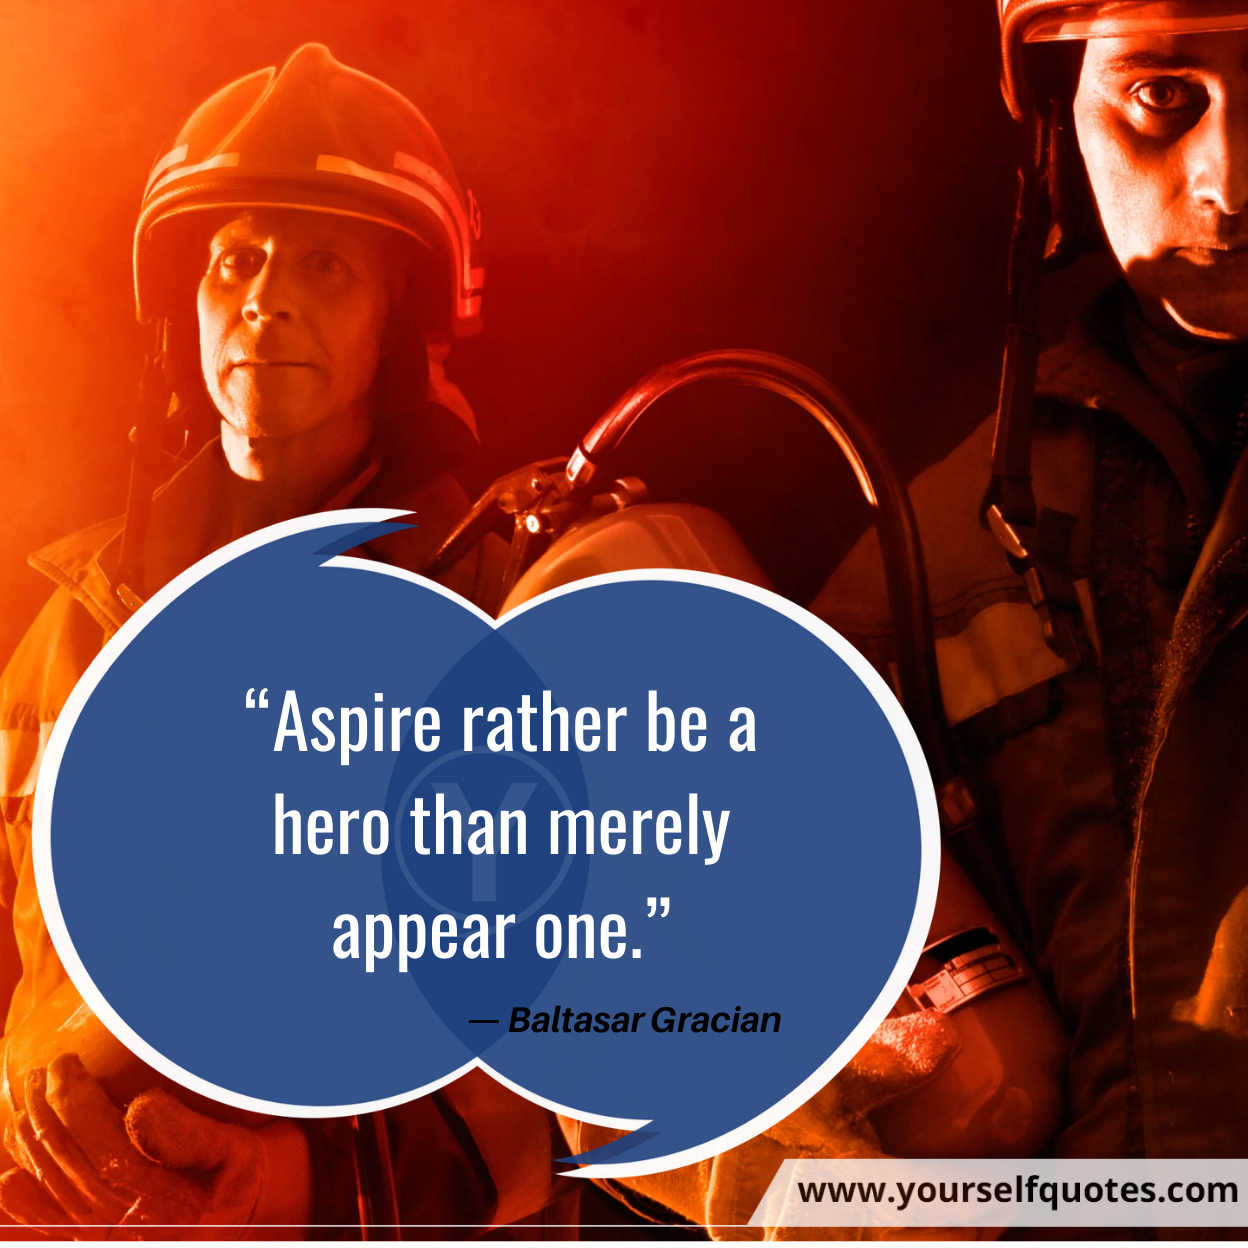 Firefighter's Day Quotes Images